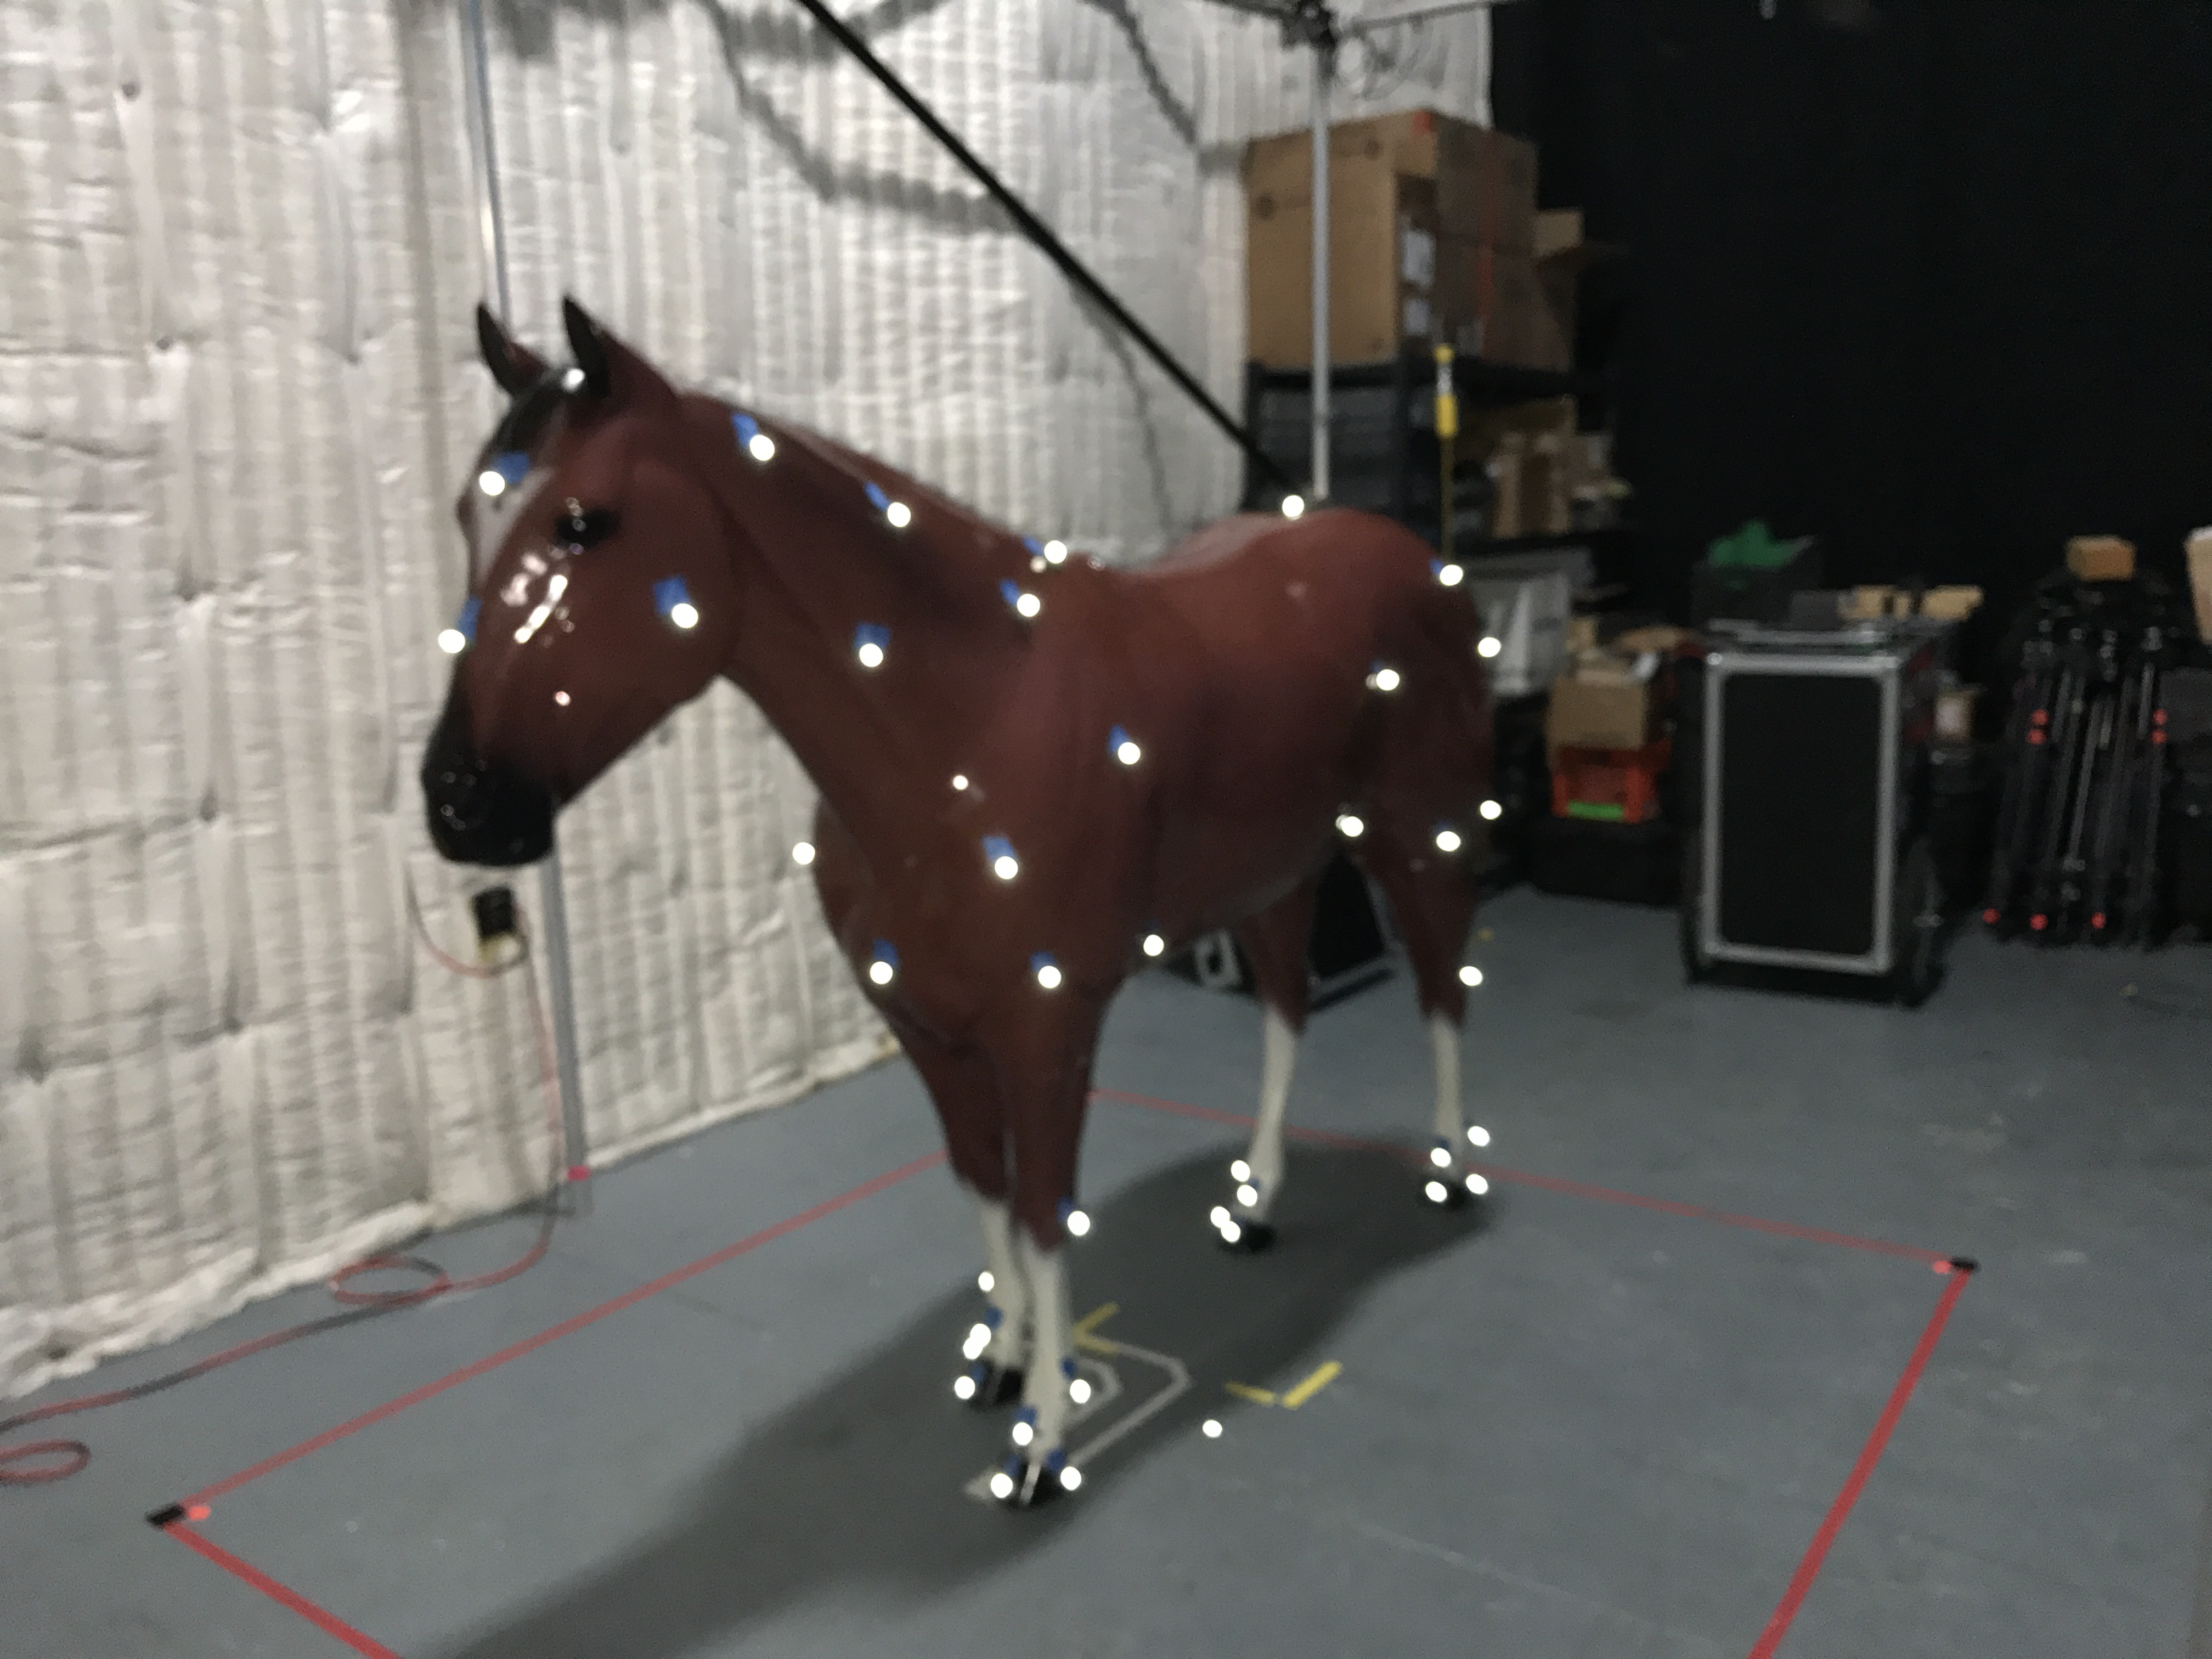 Ever wondered how you motion capture a horse? - - Gamereactor